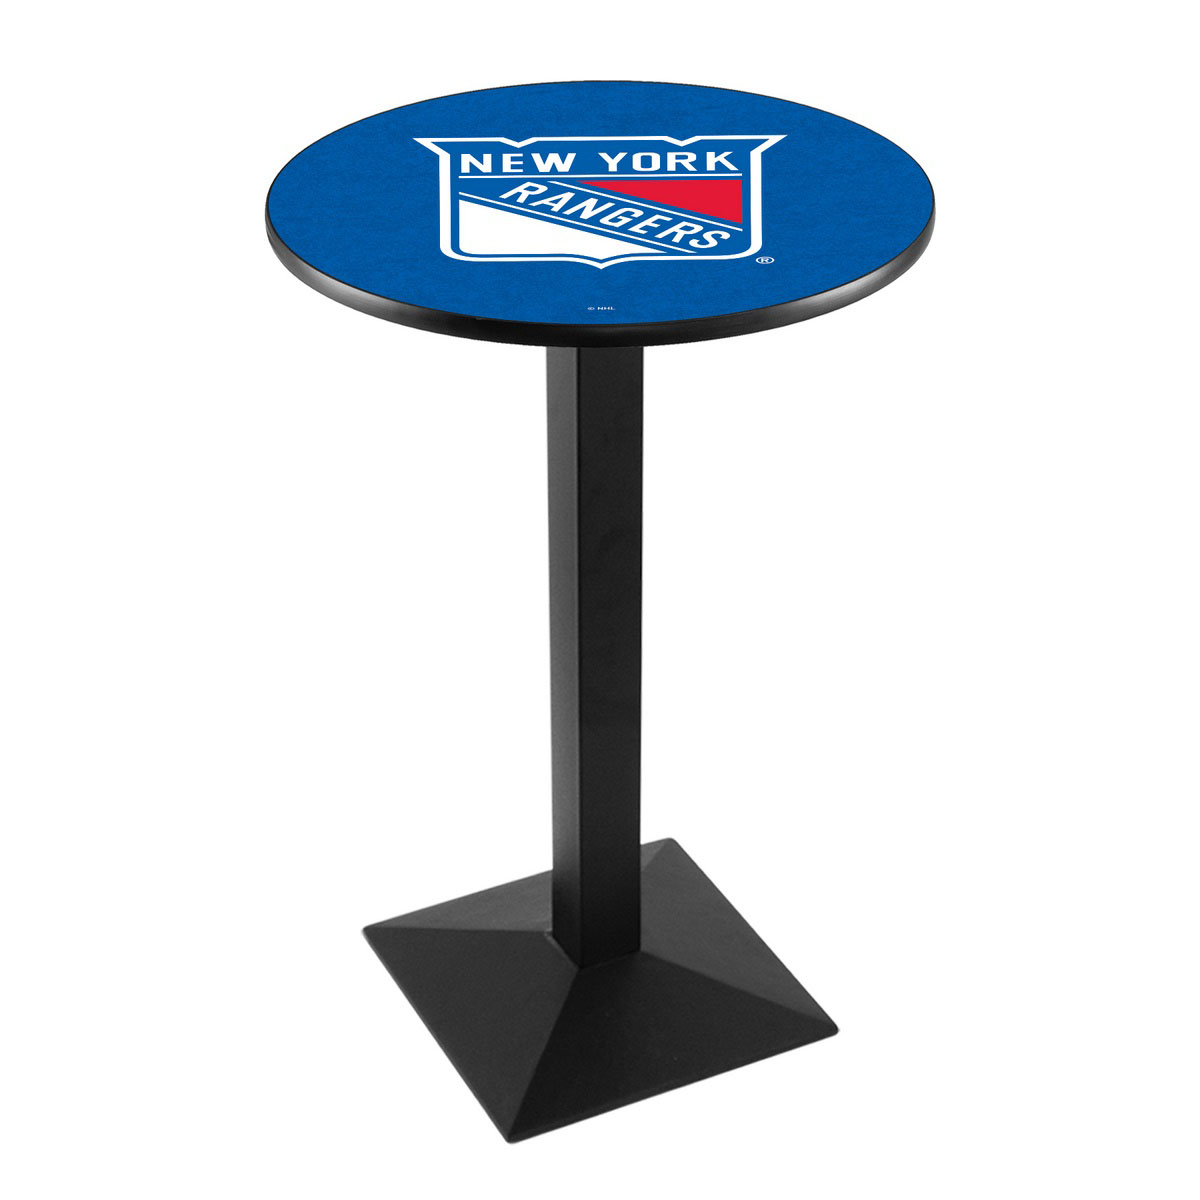 Buy New-York-Rangers-Logo-Pub-Bar-Table-Square-Stand Product Image 1949